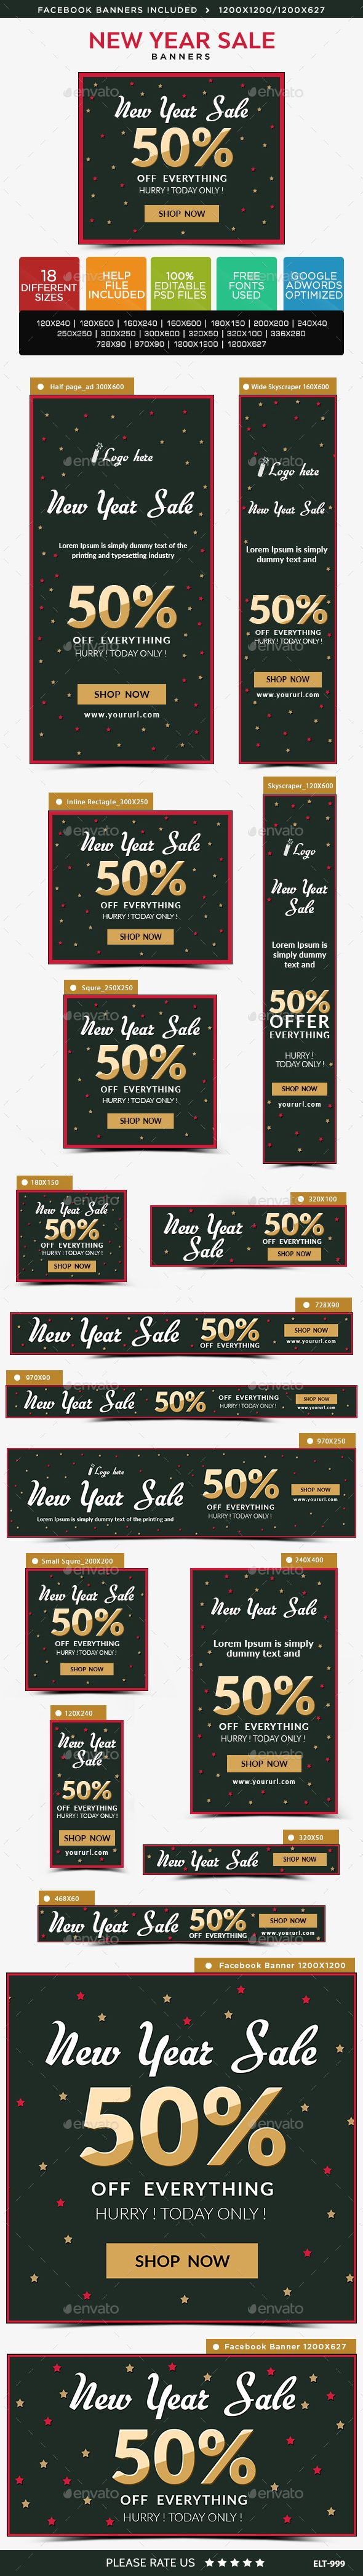 new year sale web banners template psd ad design download http